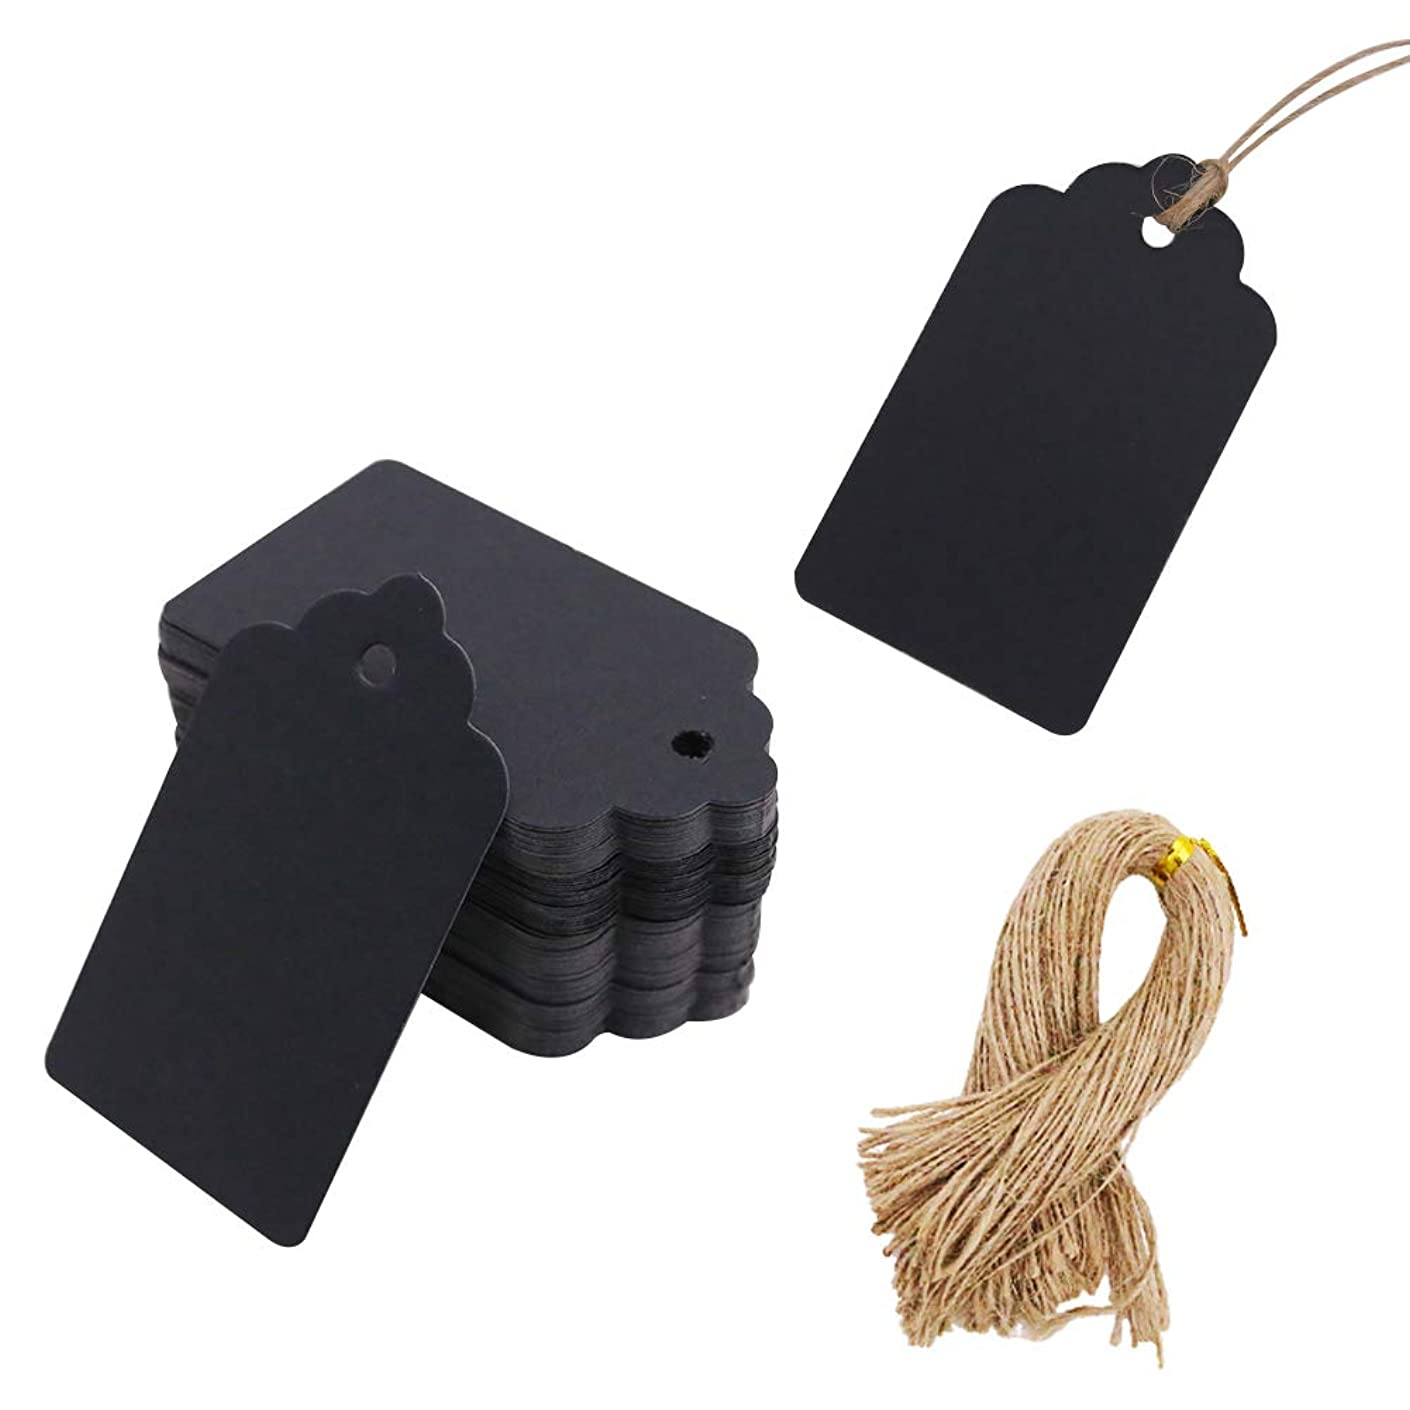 SallyFashion 125pcs Black Paper Gift Tags with Free 200 Root Natural Jute Twine